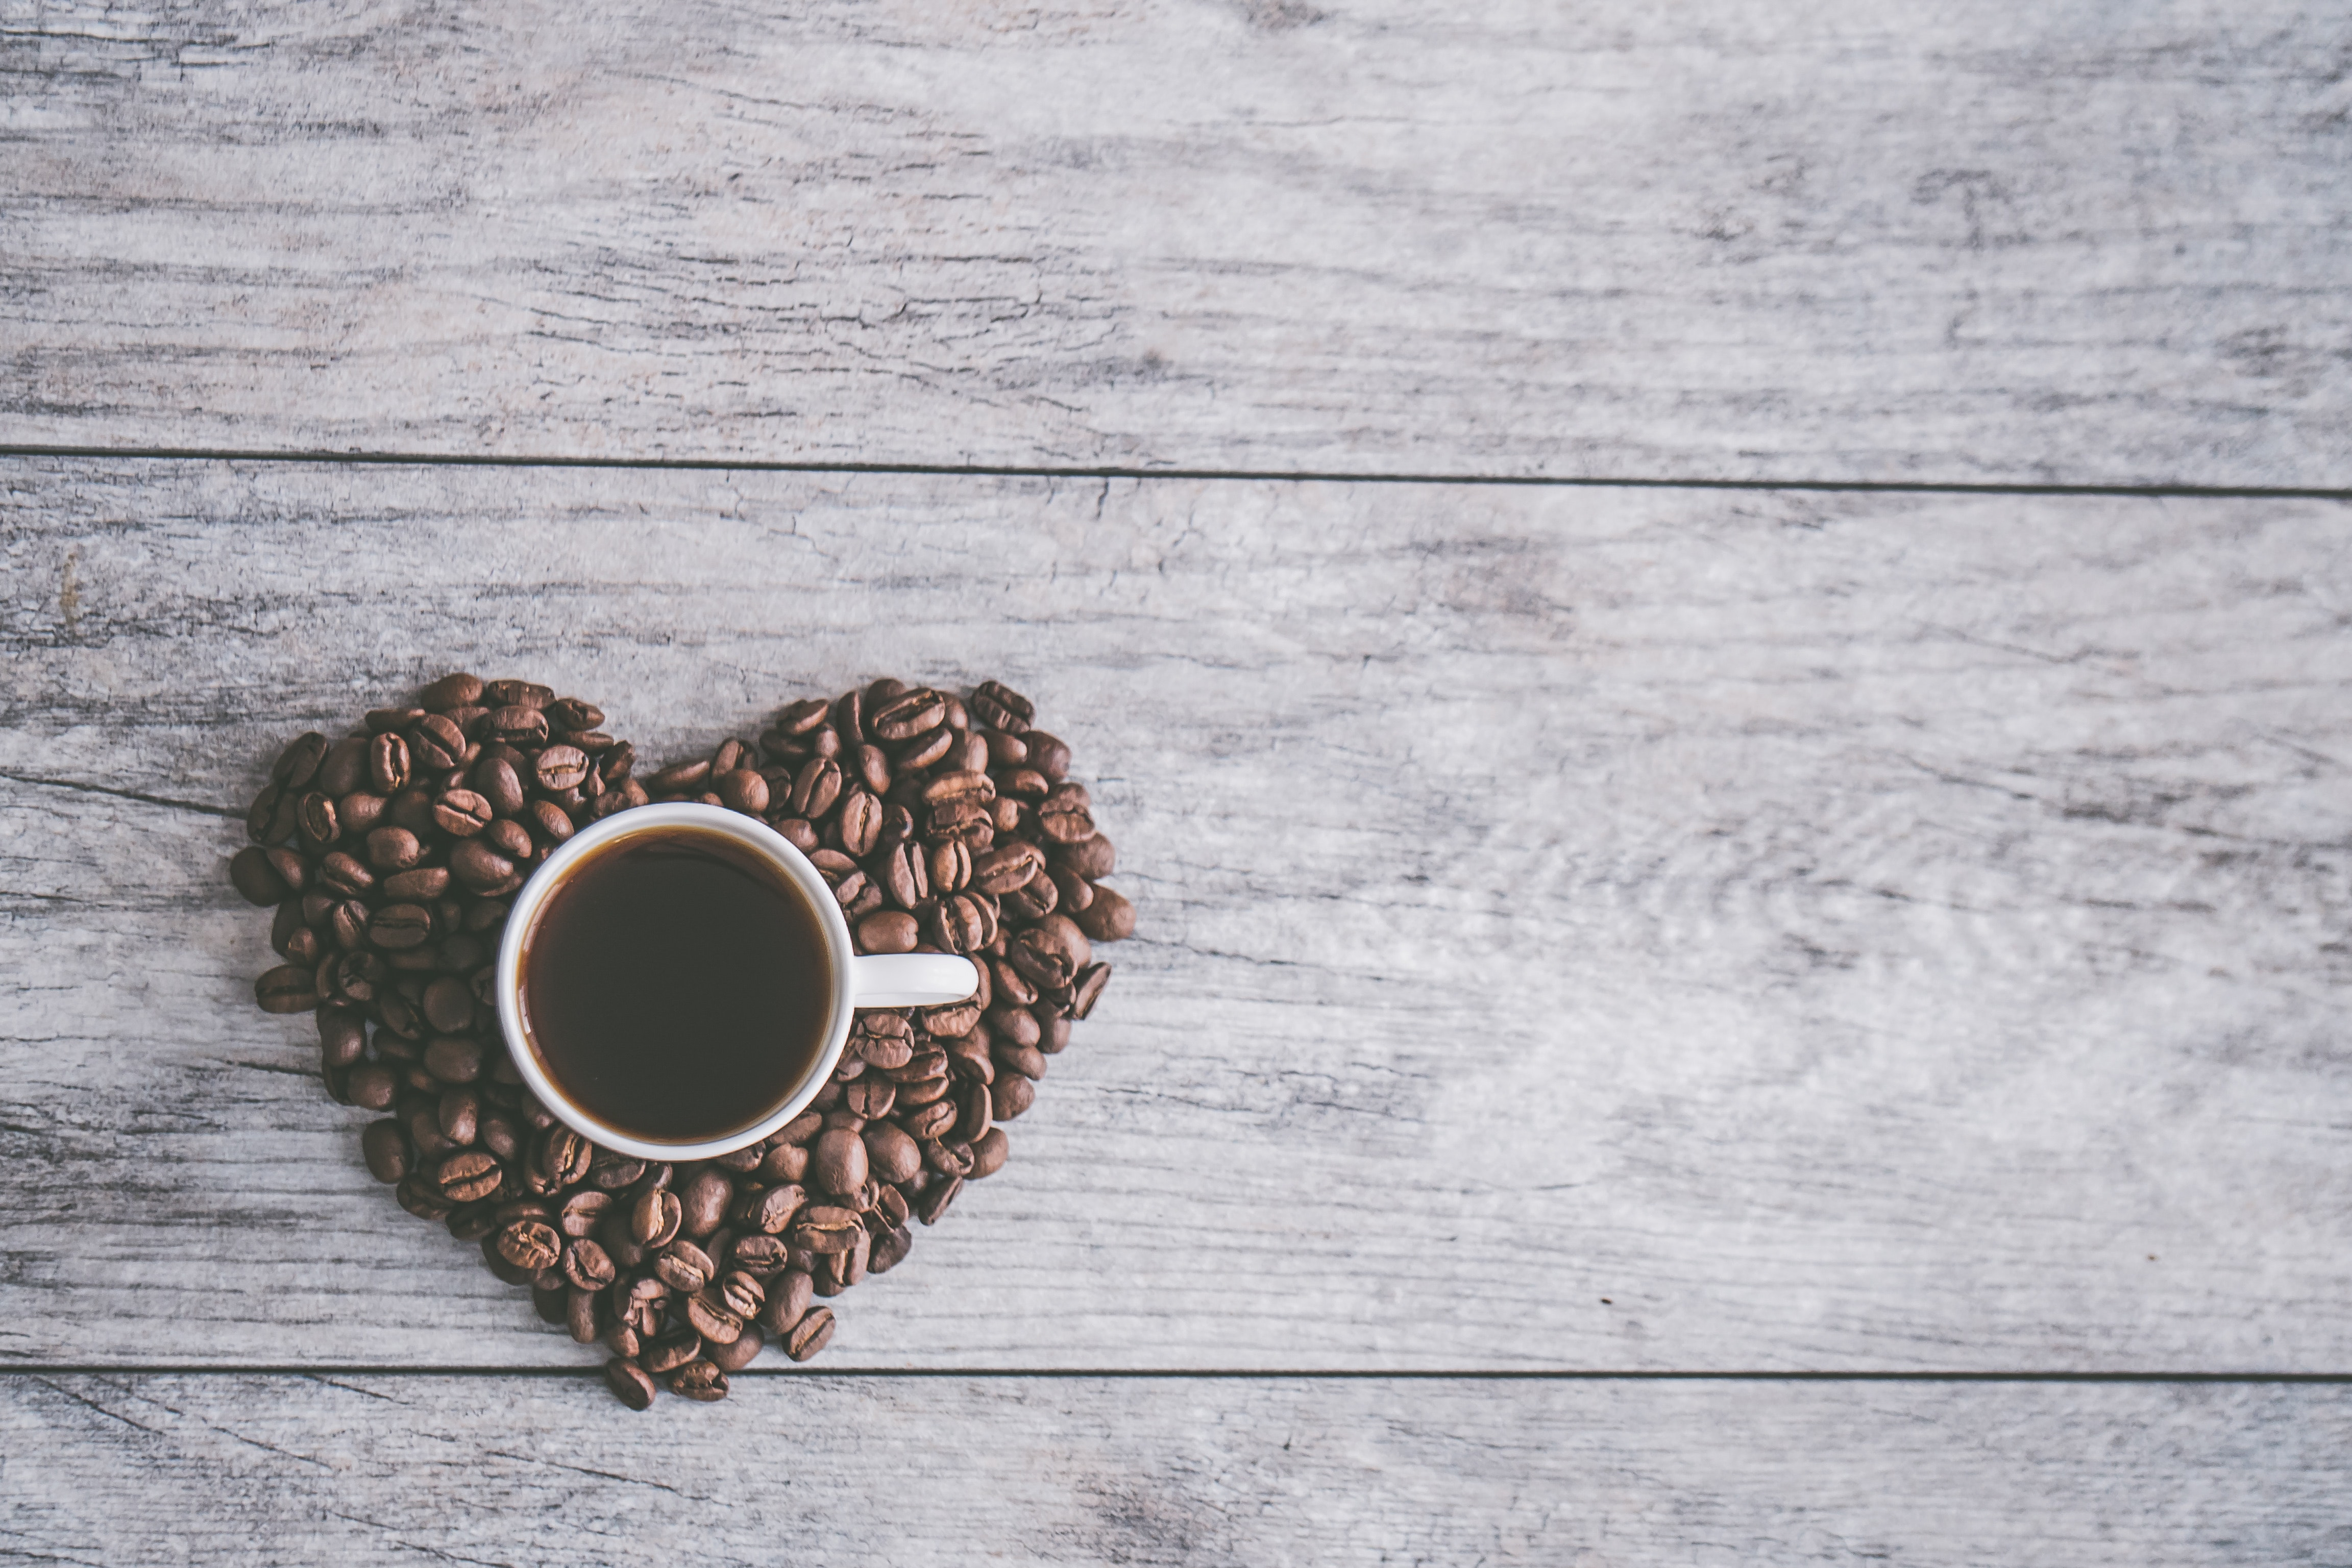 White Ceramic Mug Filled With Brown Liquid on Heart-shaped Coffee Beans, Background, Flatlay, Wood, Texture, HQ Photo